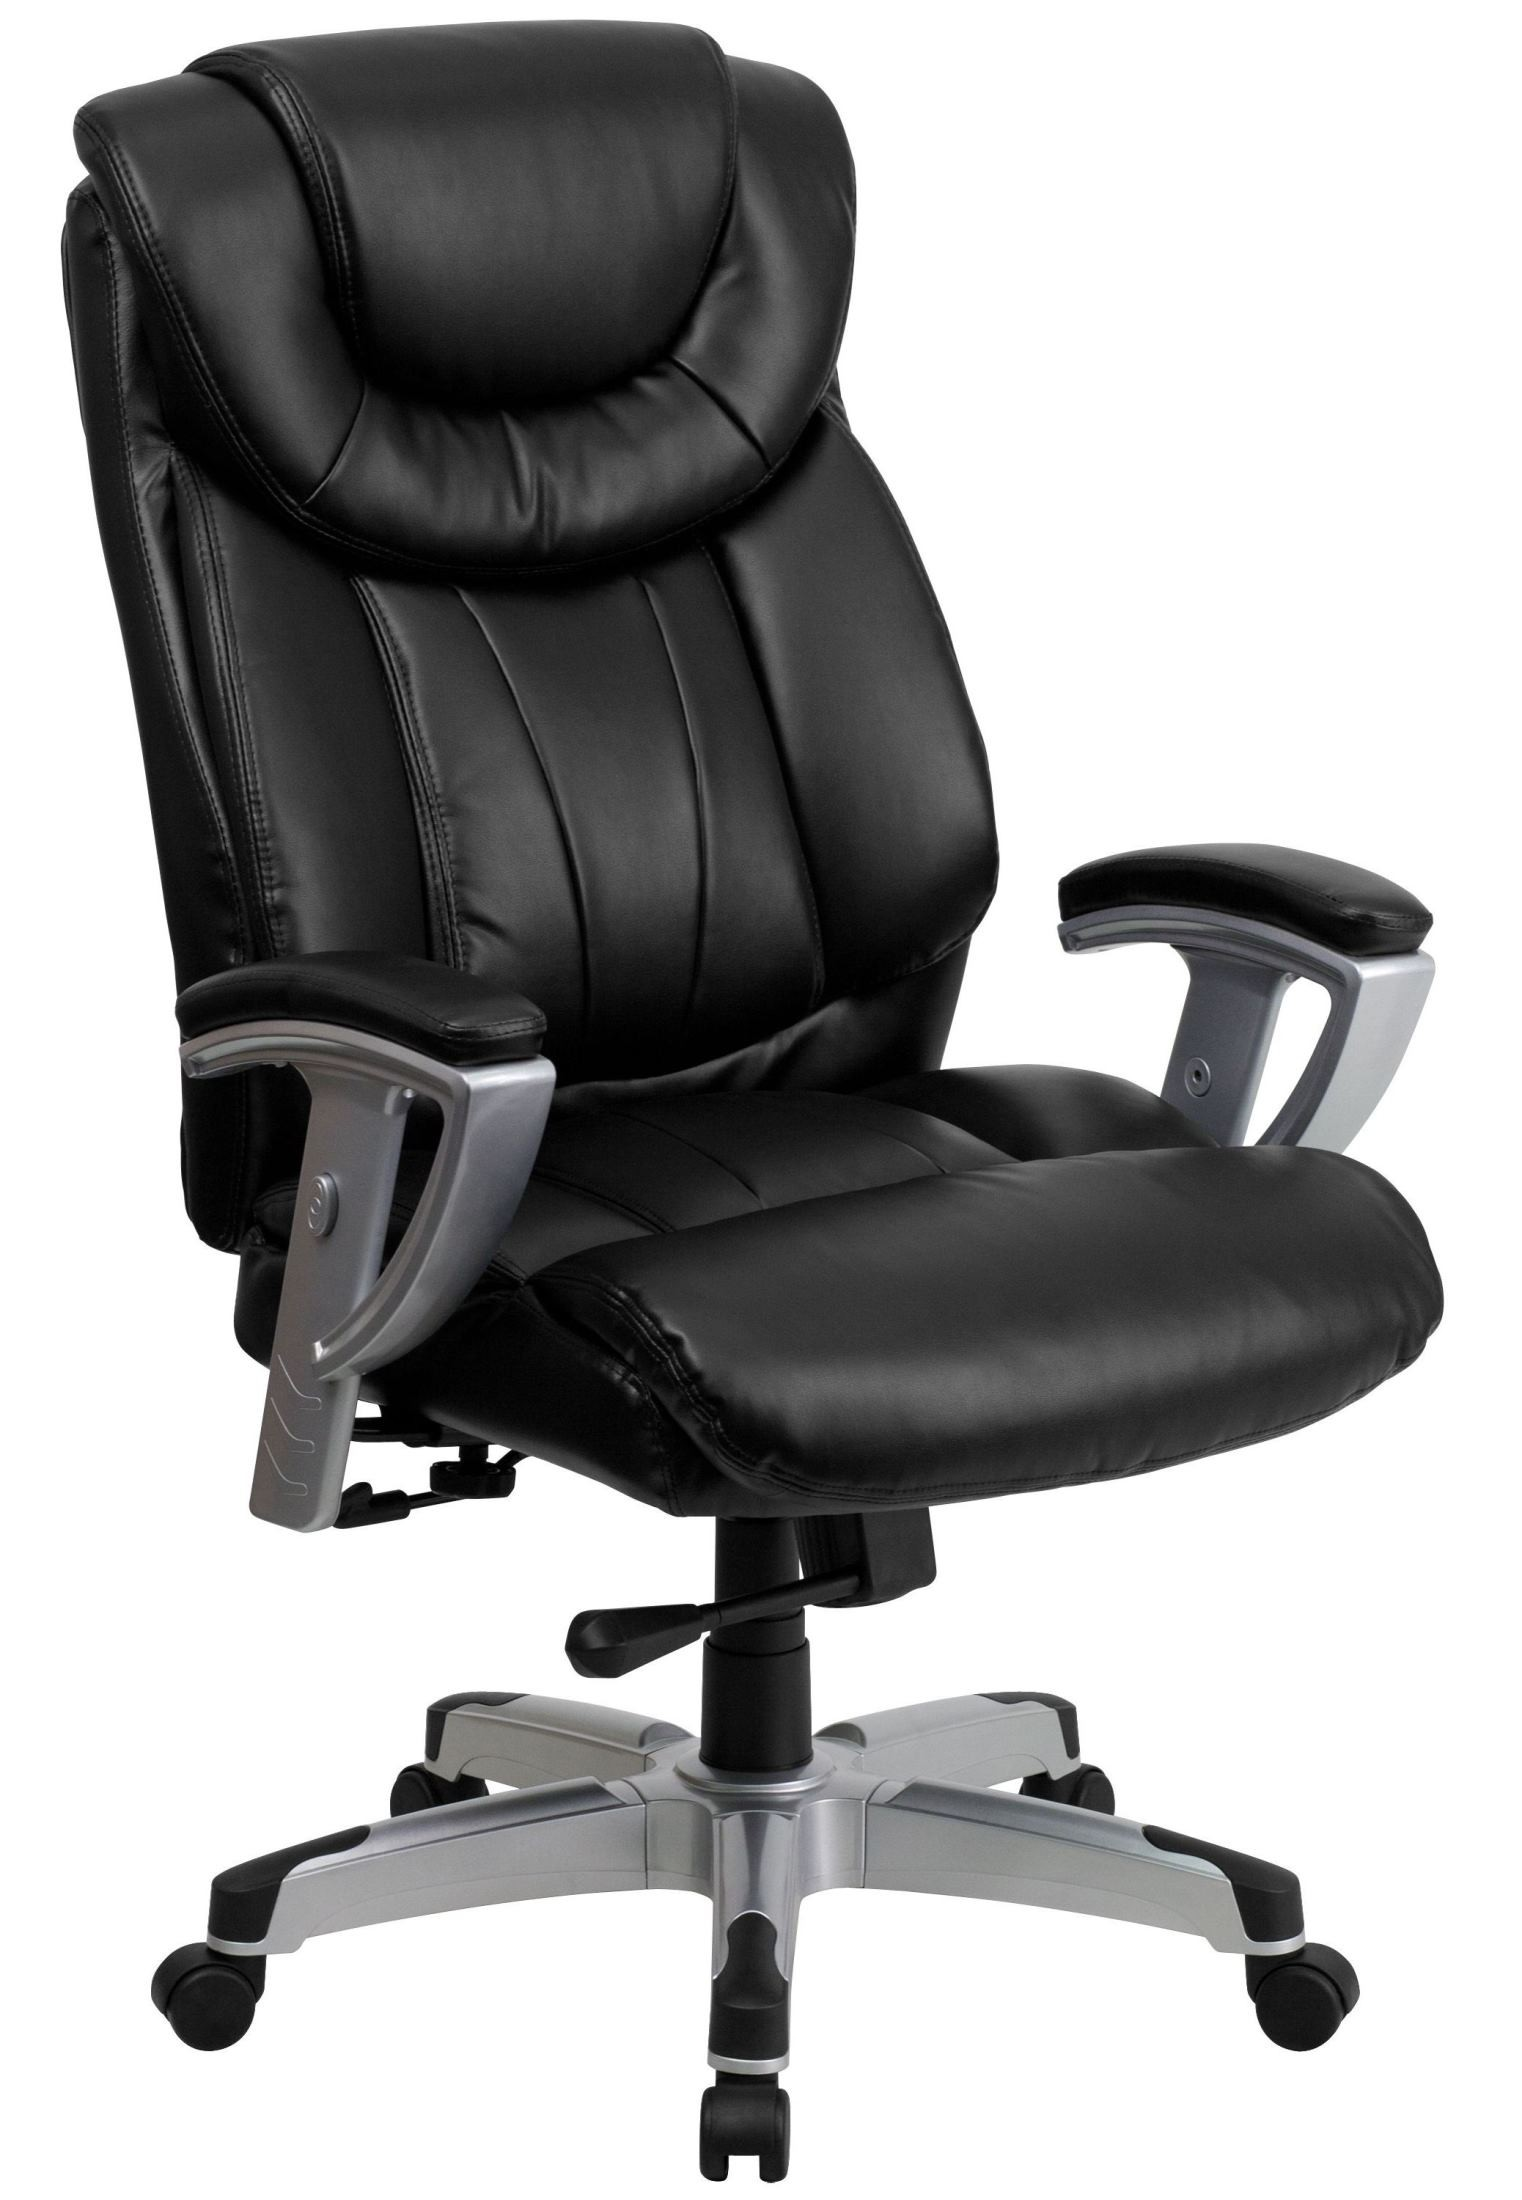 Tall Office Chair 1534 Hercules Series Big And Tall Black Leather Arm Office